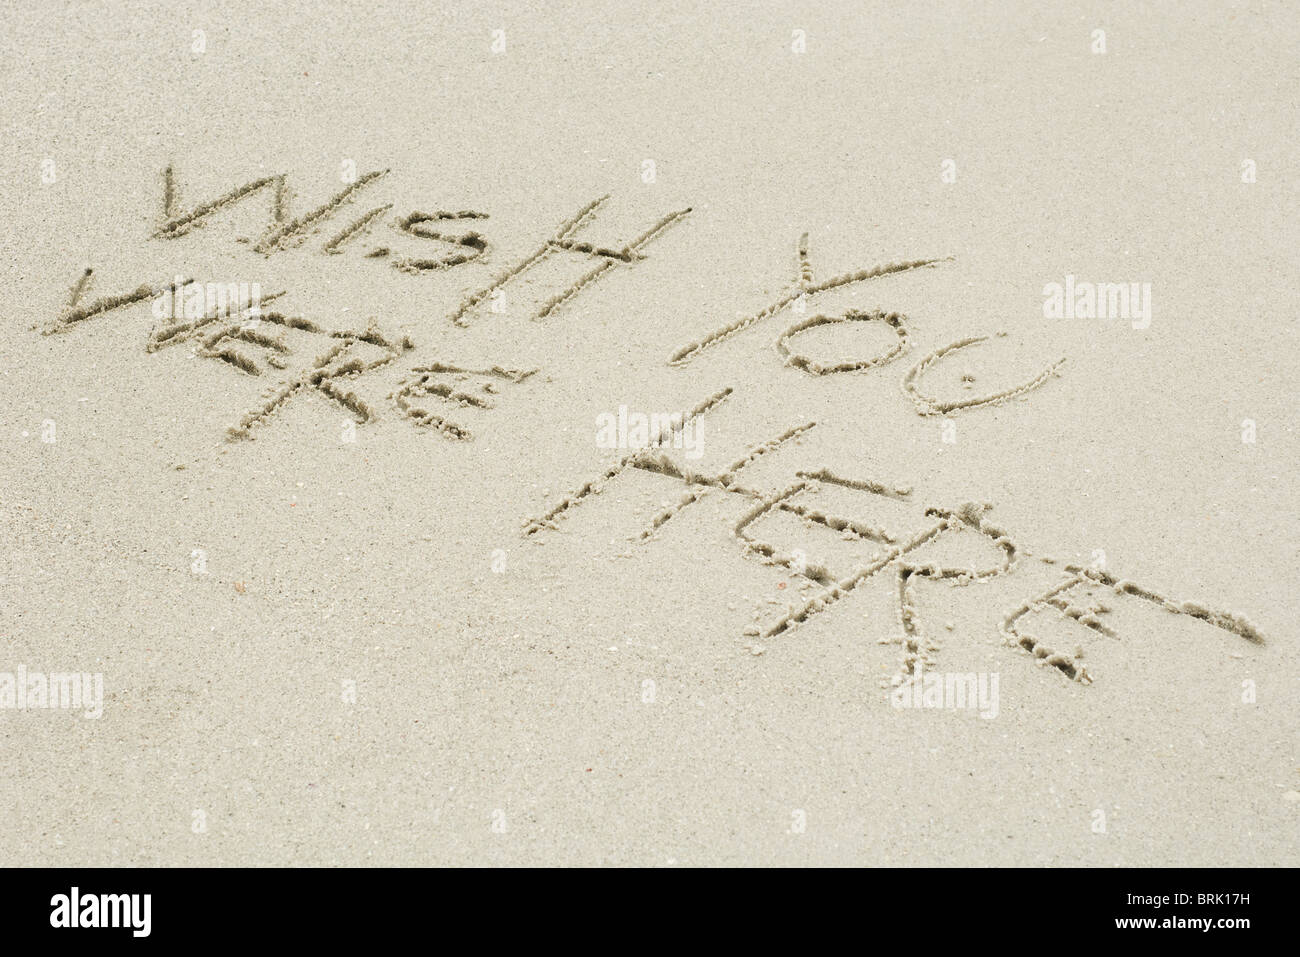 Wish you were here written in sand - Stock Image